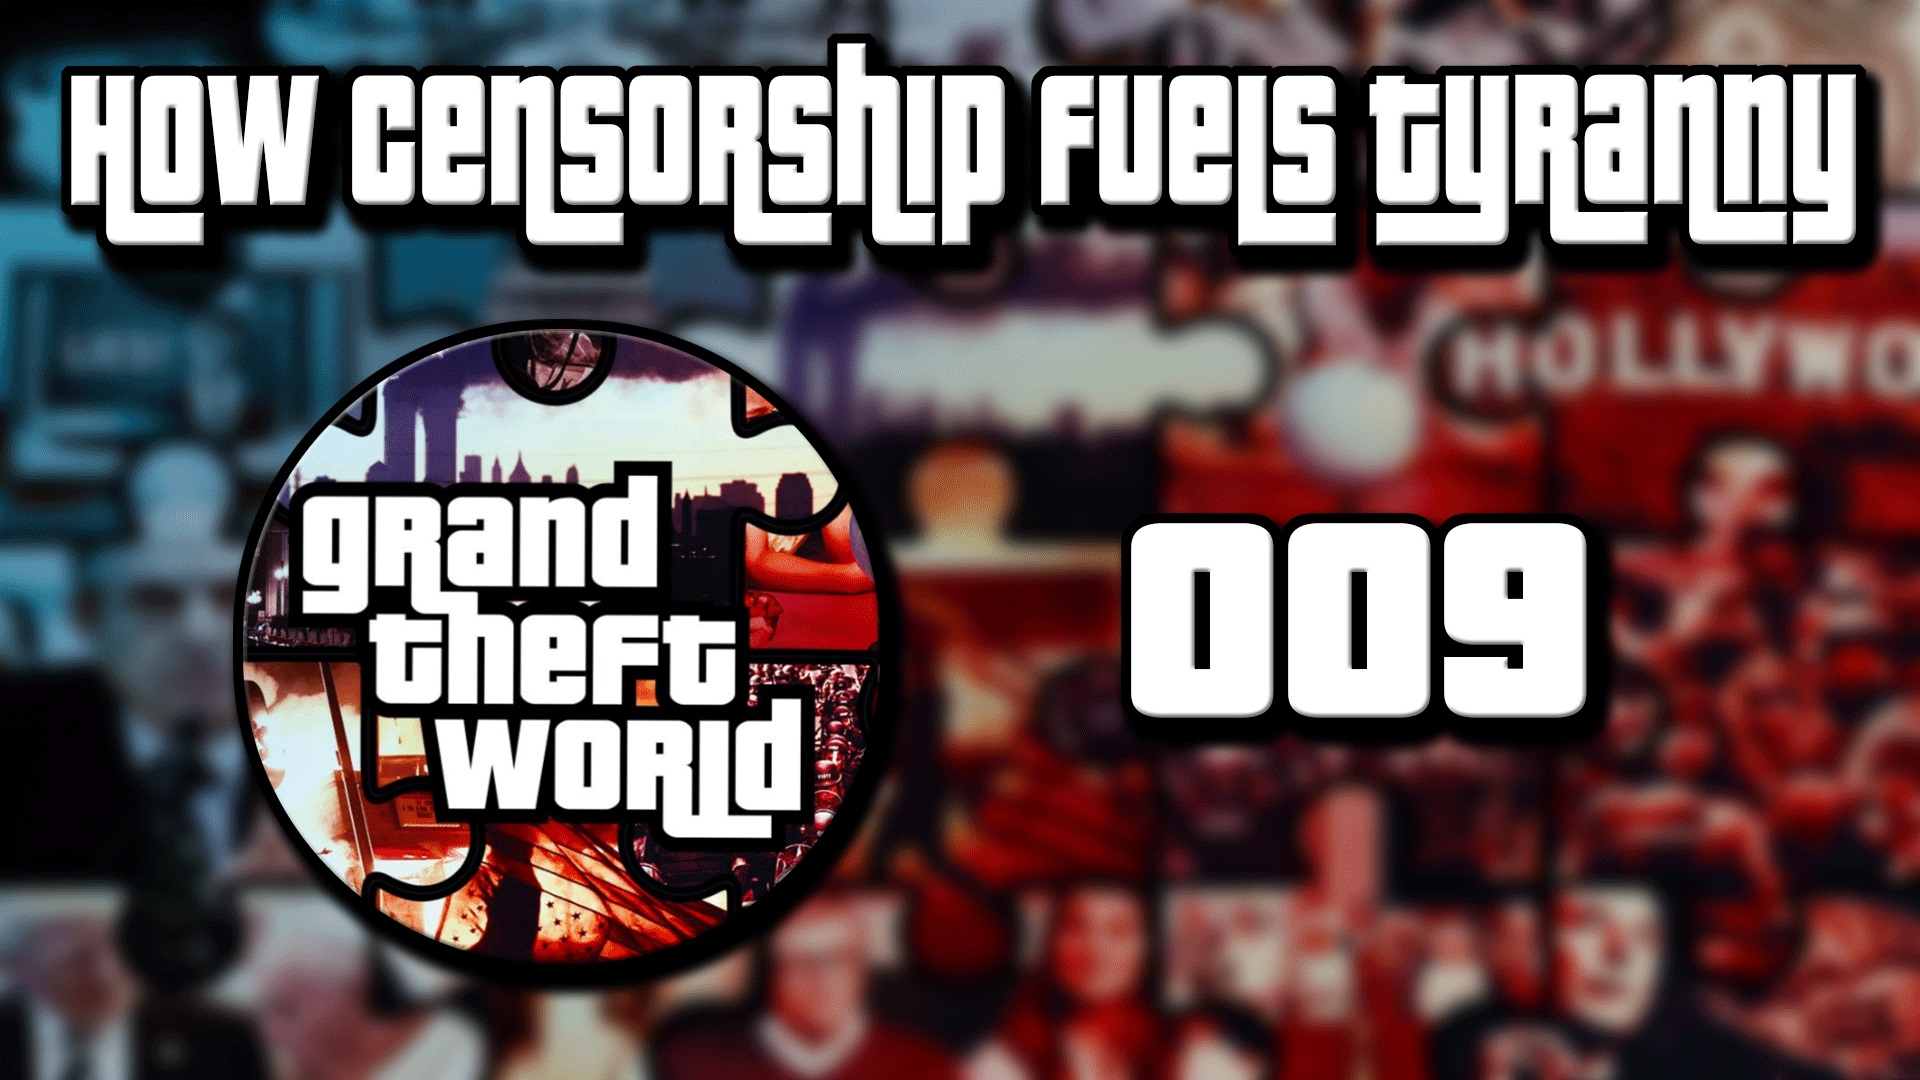 Grand Theft World Podcast 009 | How CENSORSHIP Fuels Tyranny